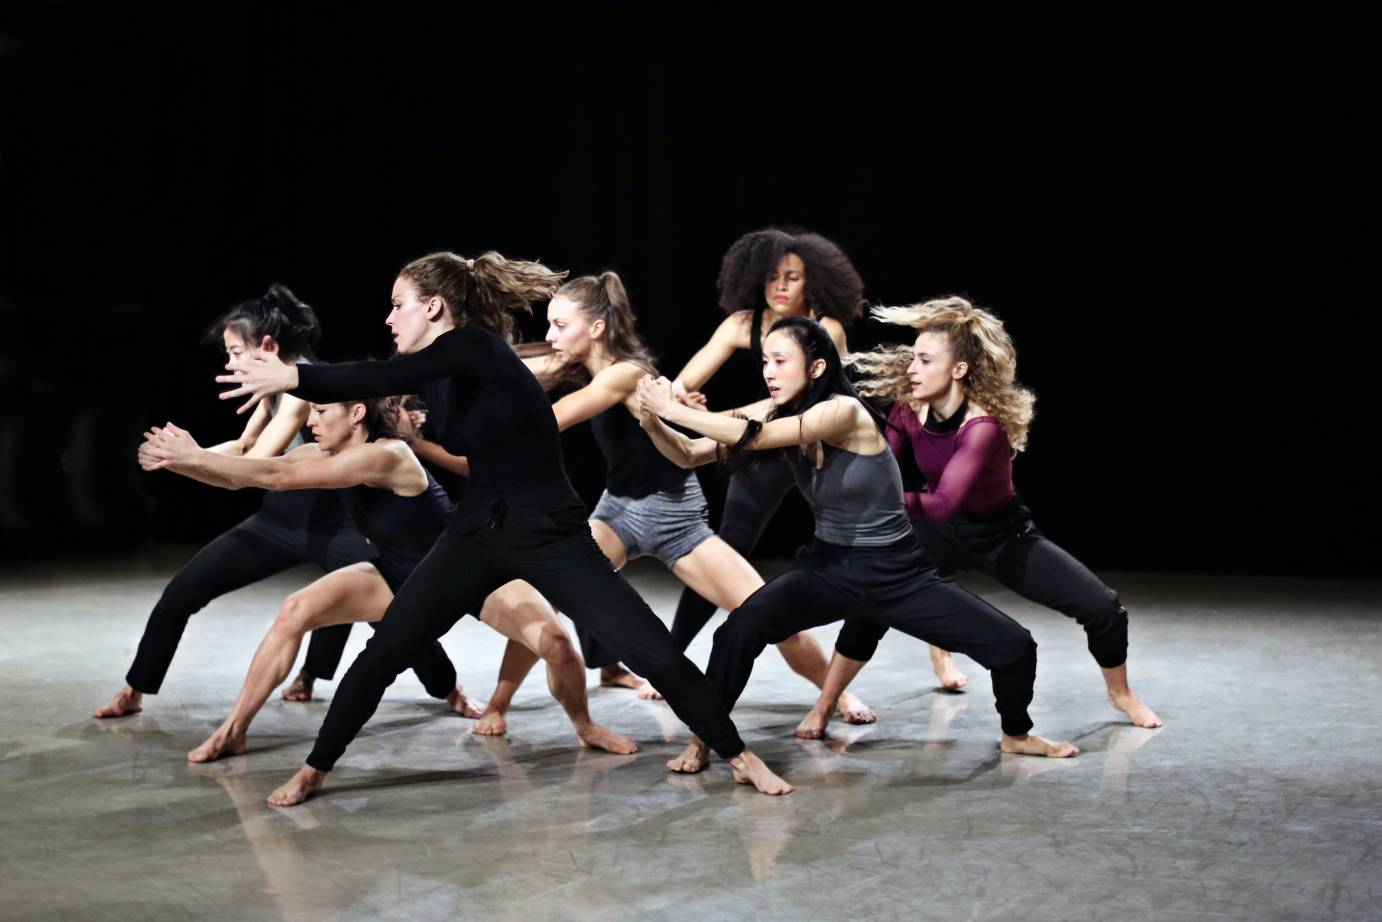 Group of female dancers clasp their hands while looking fierce